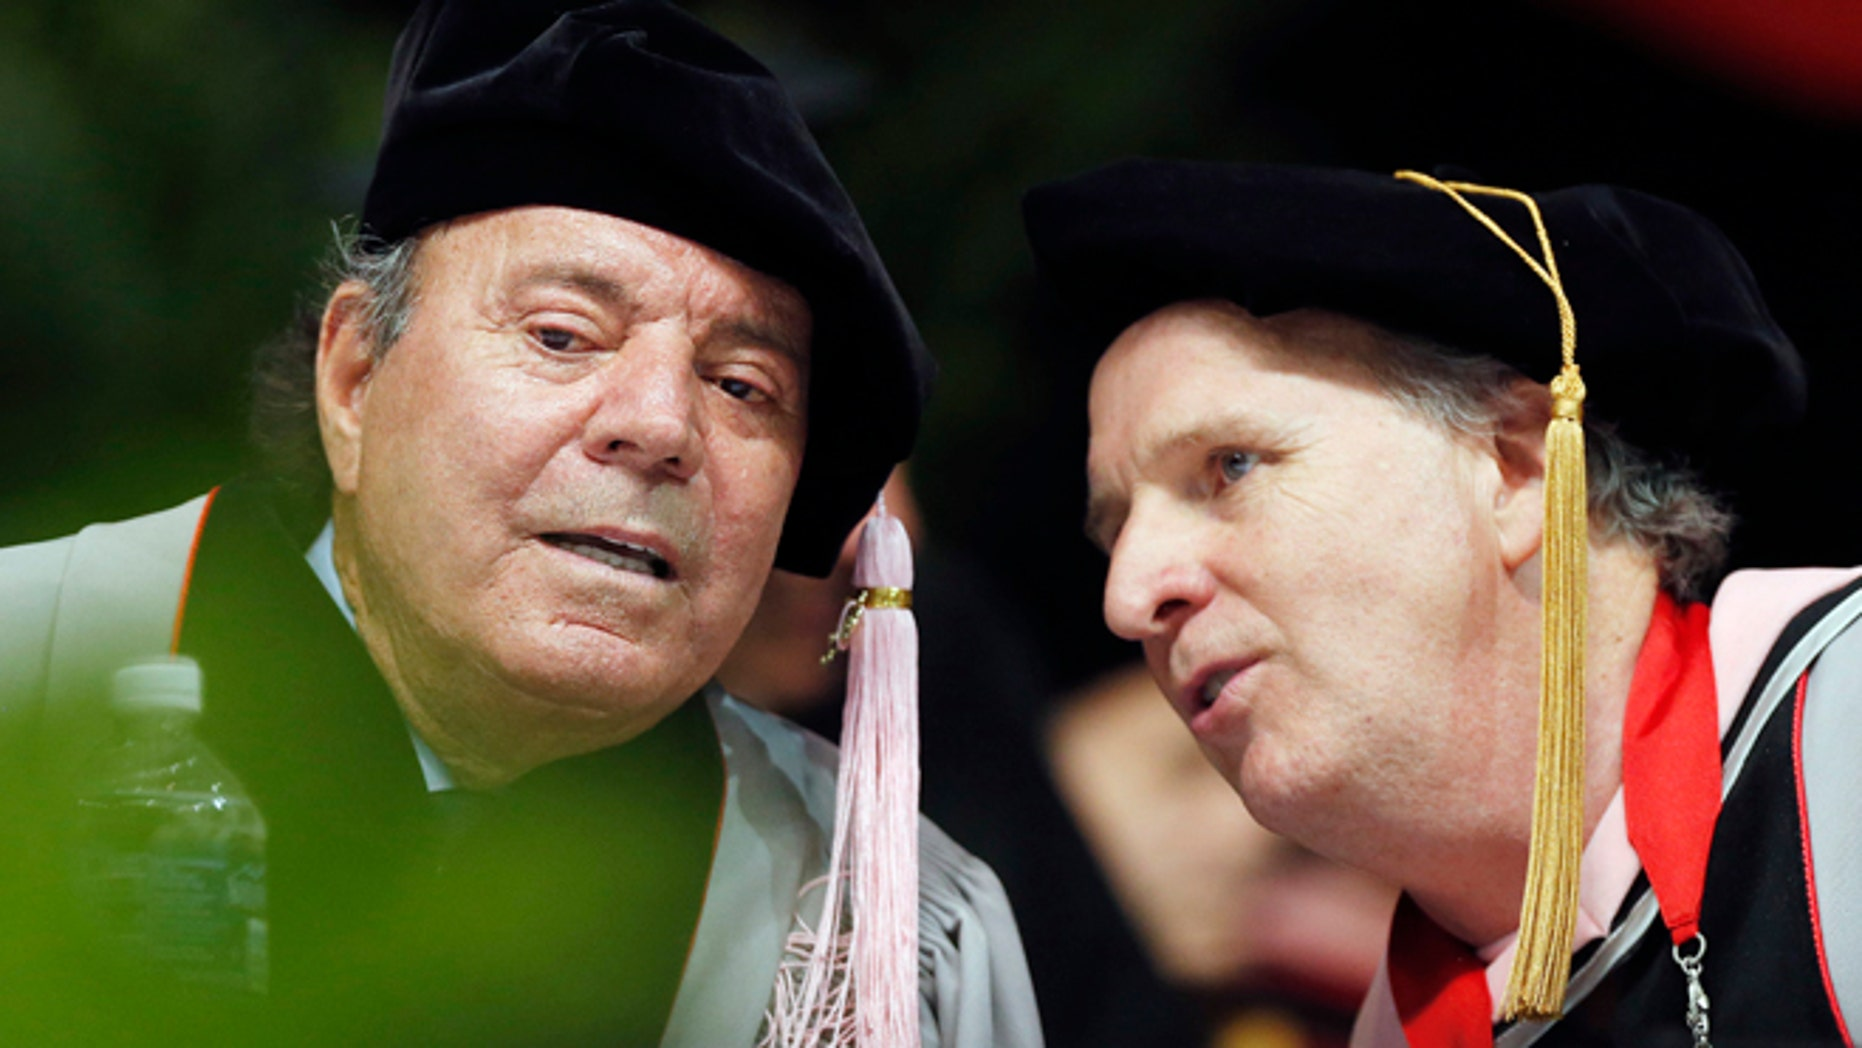 Julio Iglesias, left,  speaks with Berklee College of Music president Roger Brown before receiving an honorary doctor of music degree during commencement ceremonies, Saturday, May 9, 2015, in Boston. (AP Photo/Michael Dwyer)